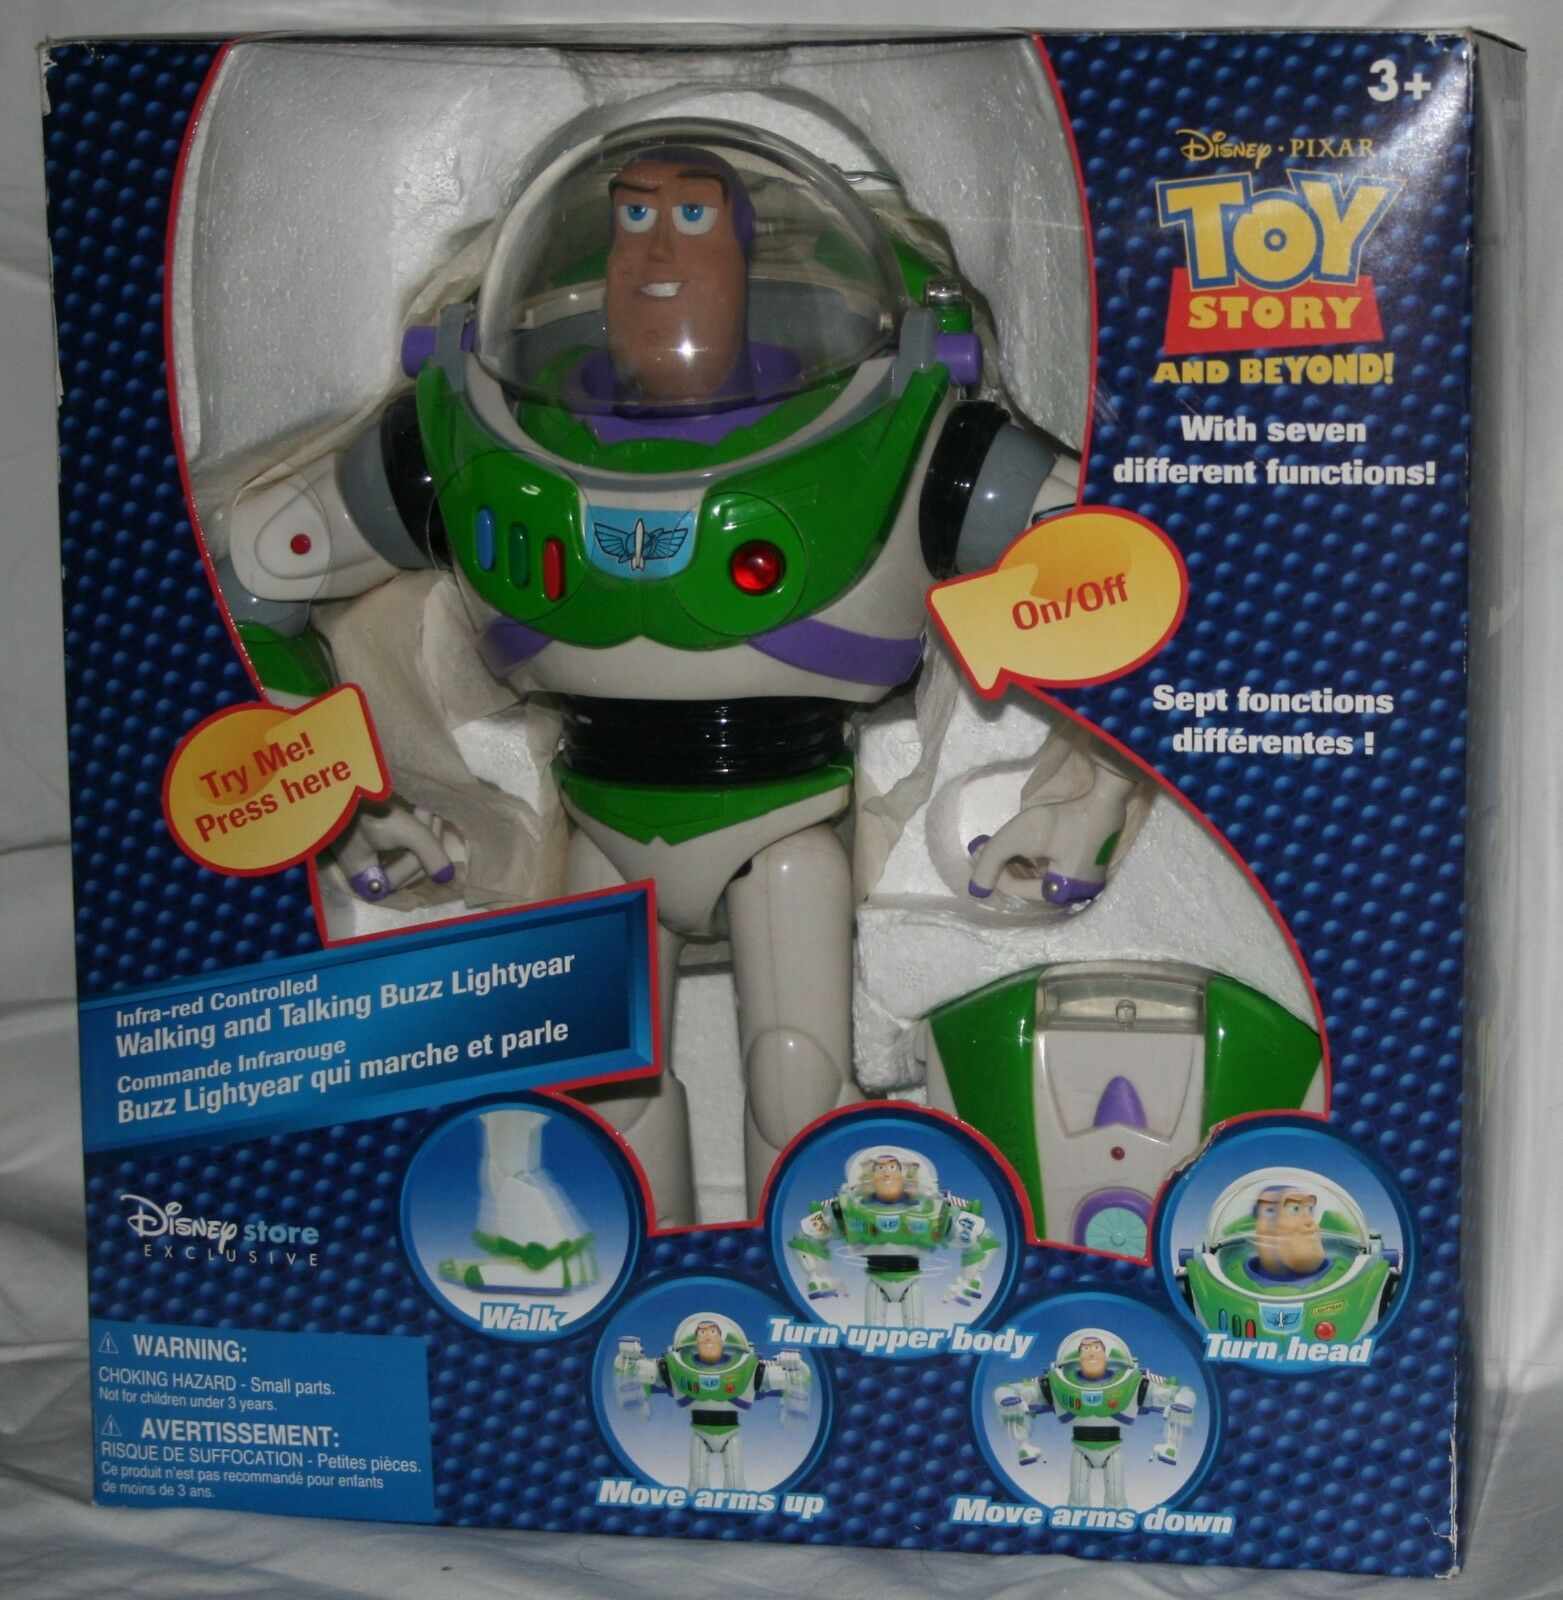 Toy Story and Beyond Buzz Lightyear walking and talking infra-ROT controlled